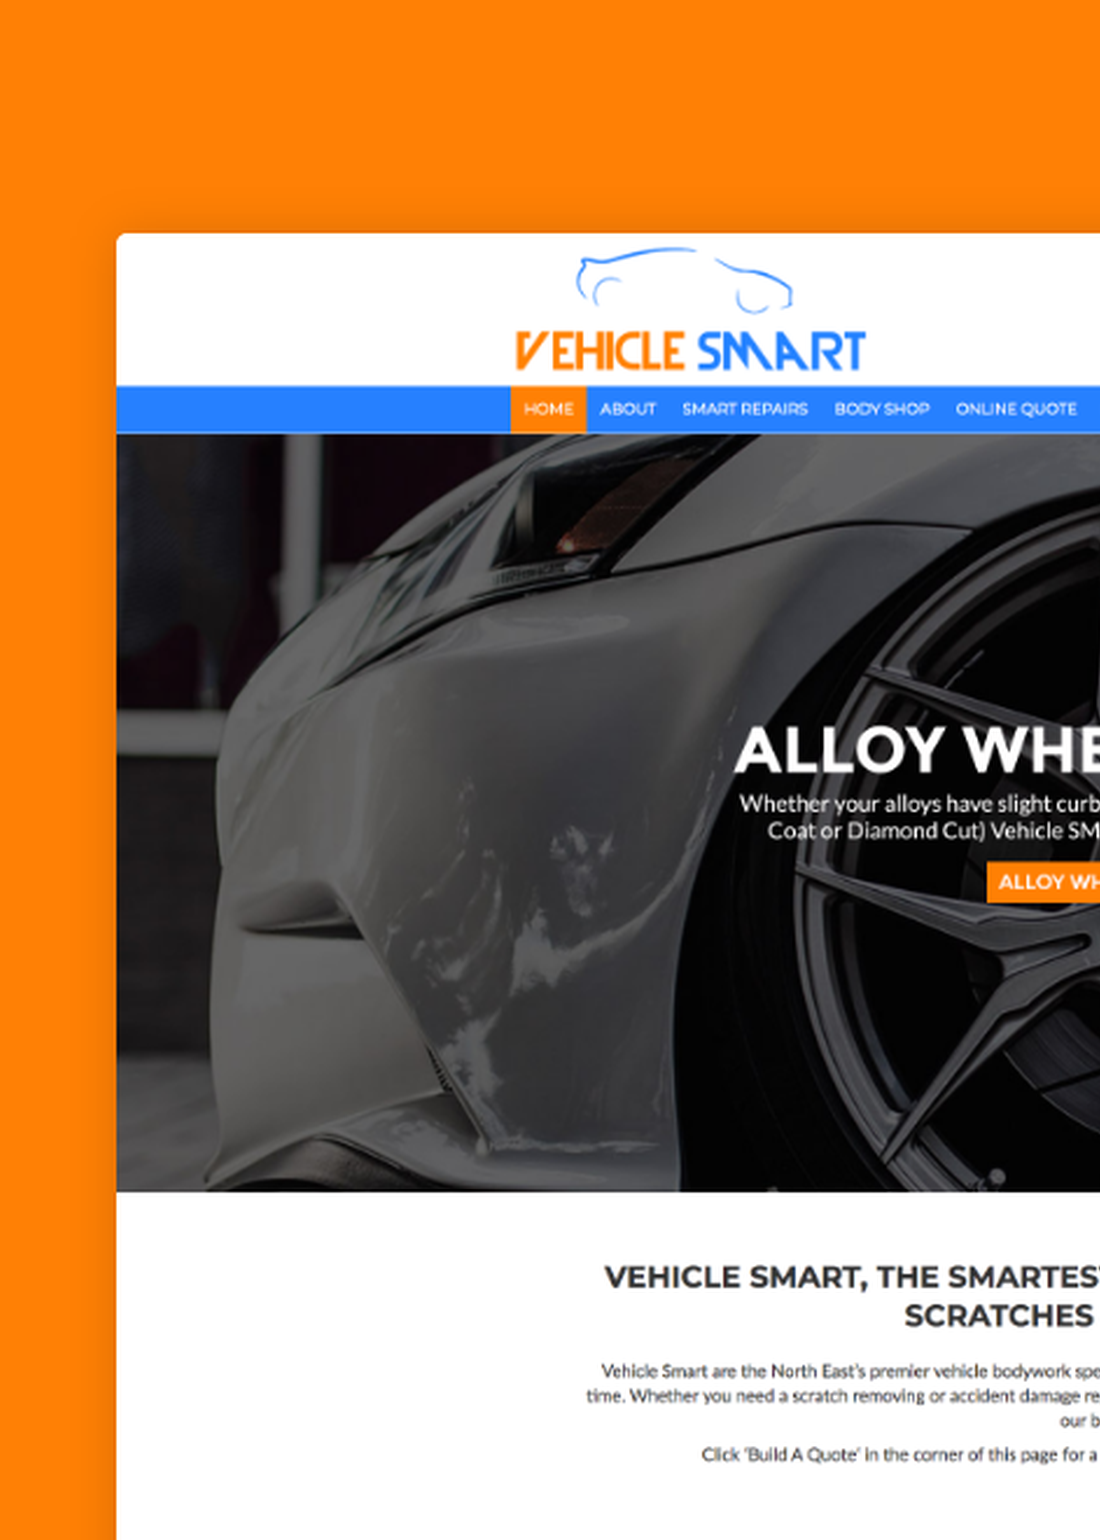 Premium Performance For Vehicle Bodywork Specialists - Vehicle SMART